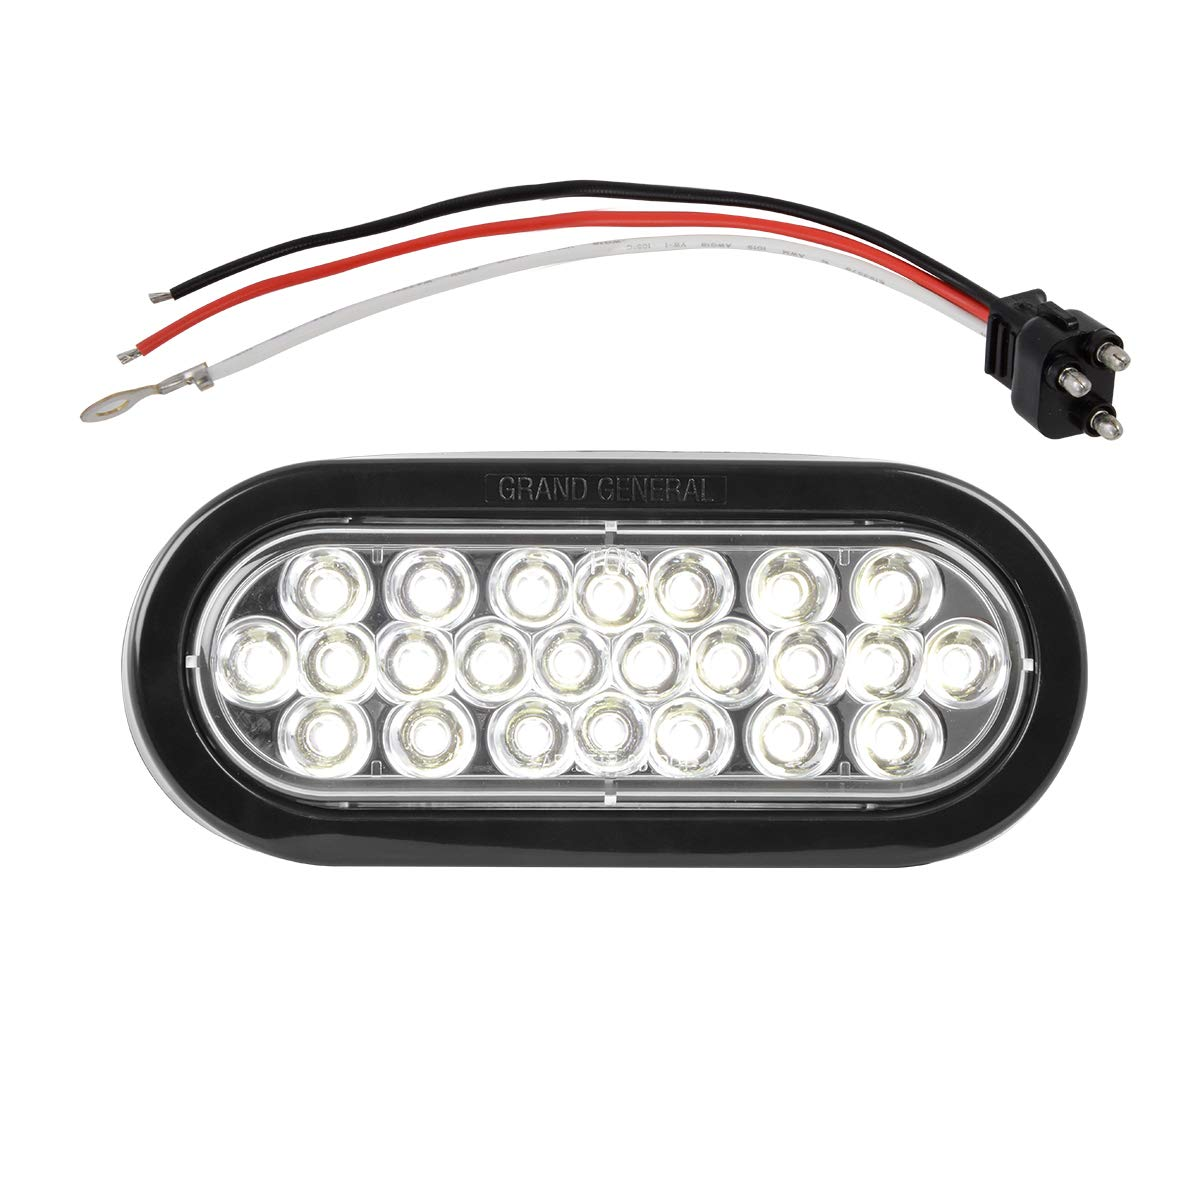 Grand General 78222BP Pearl 6'' White Oval LED Backup Light (Includes Light, Grommet and Pigtail for Trucks, Trailers, RVs, Buses, Utility Vehicles) by Grand General